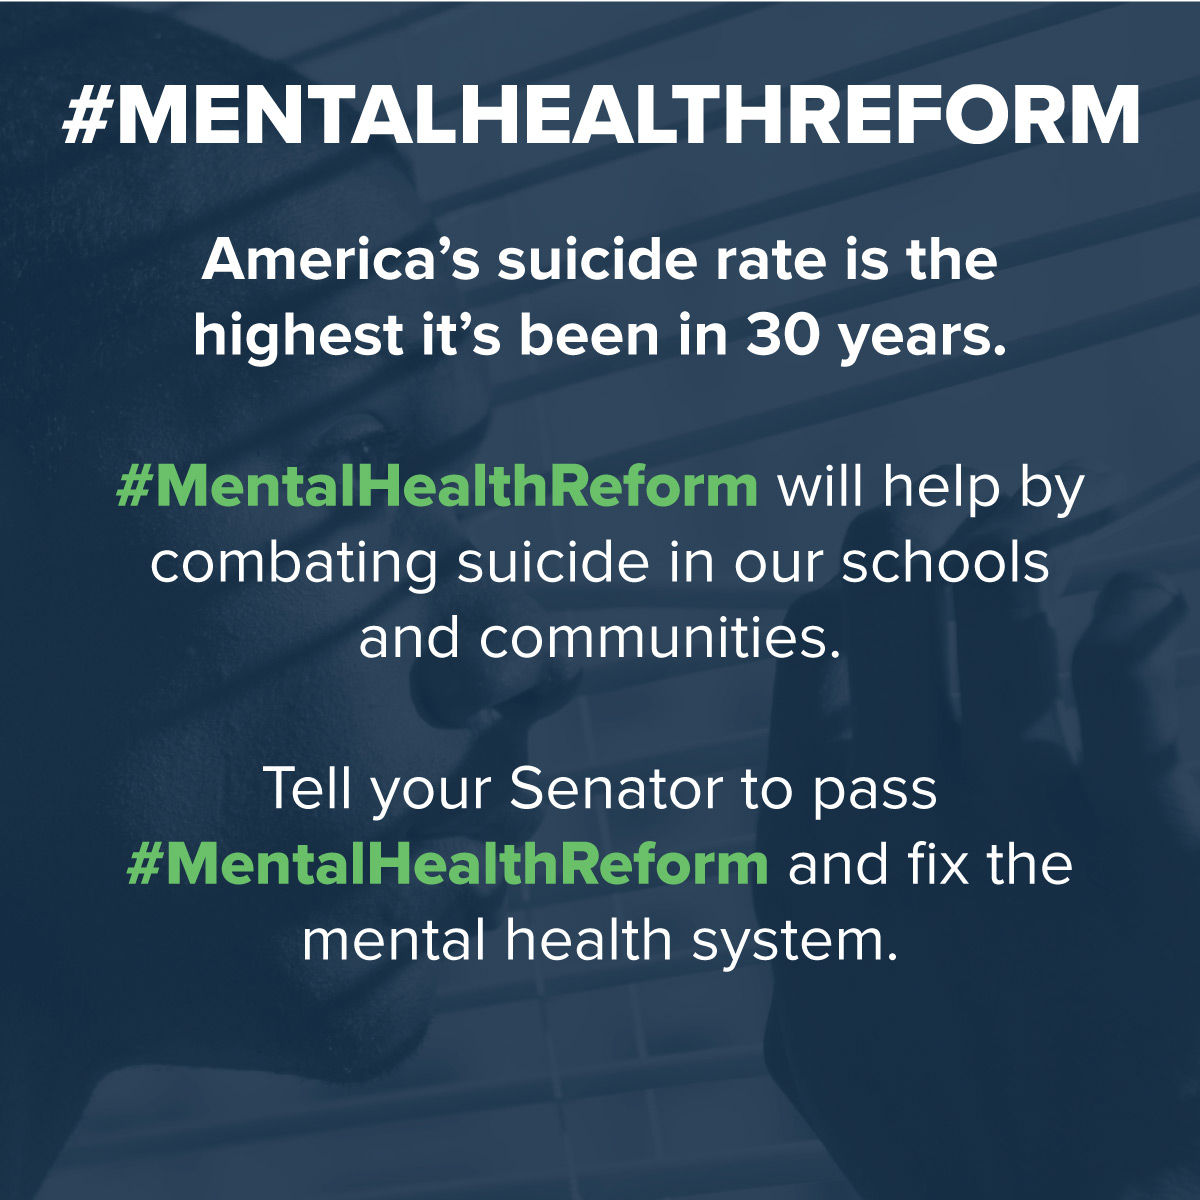 May 15-21 Show You're #StigmaFree & Pass #MentalHealthReform